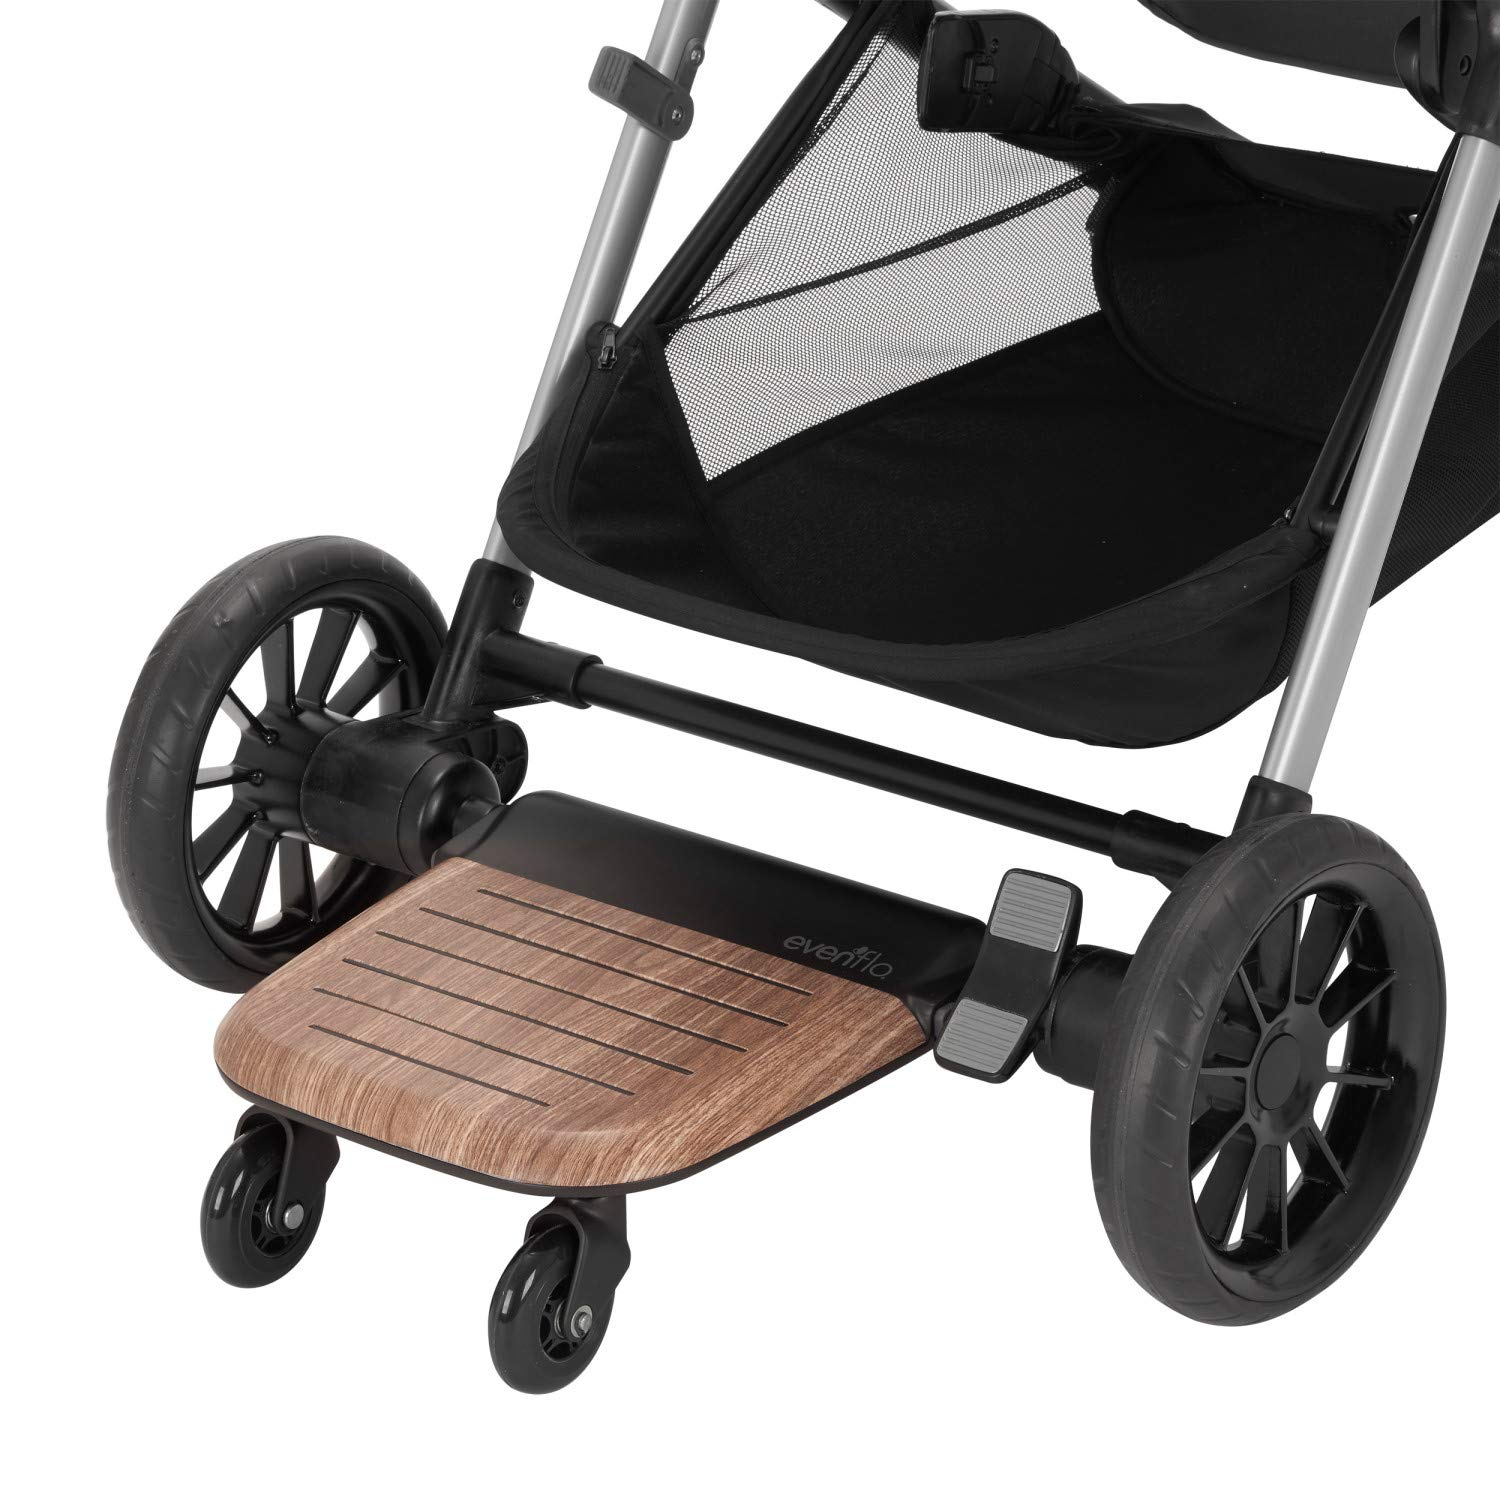 Evenflo Stroller Rider Board, Convenient Riding Options, Non-Skid Surface, Smooth-Ride Wheels, Easy to Use, Holds up to 50 Pounds, No Additional Parts Needed by Evenflo (Image #5)